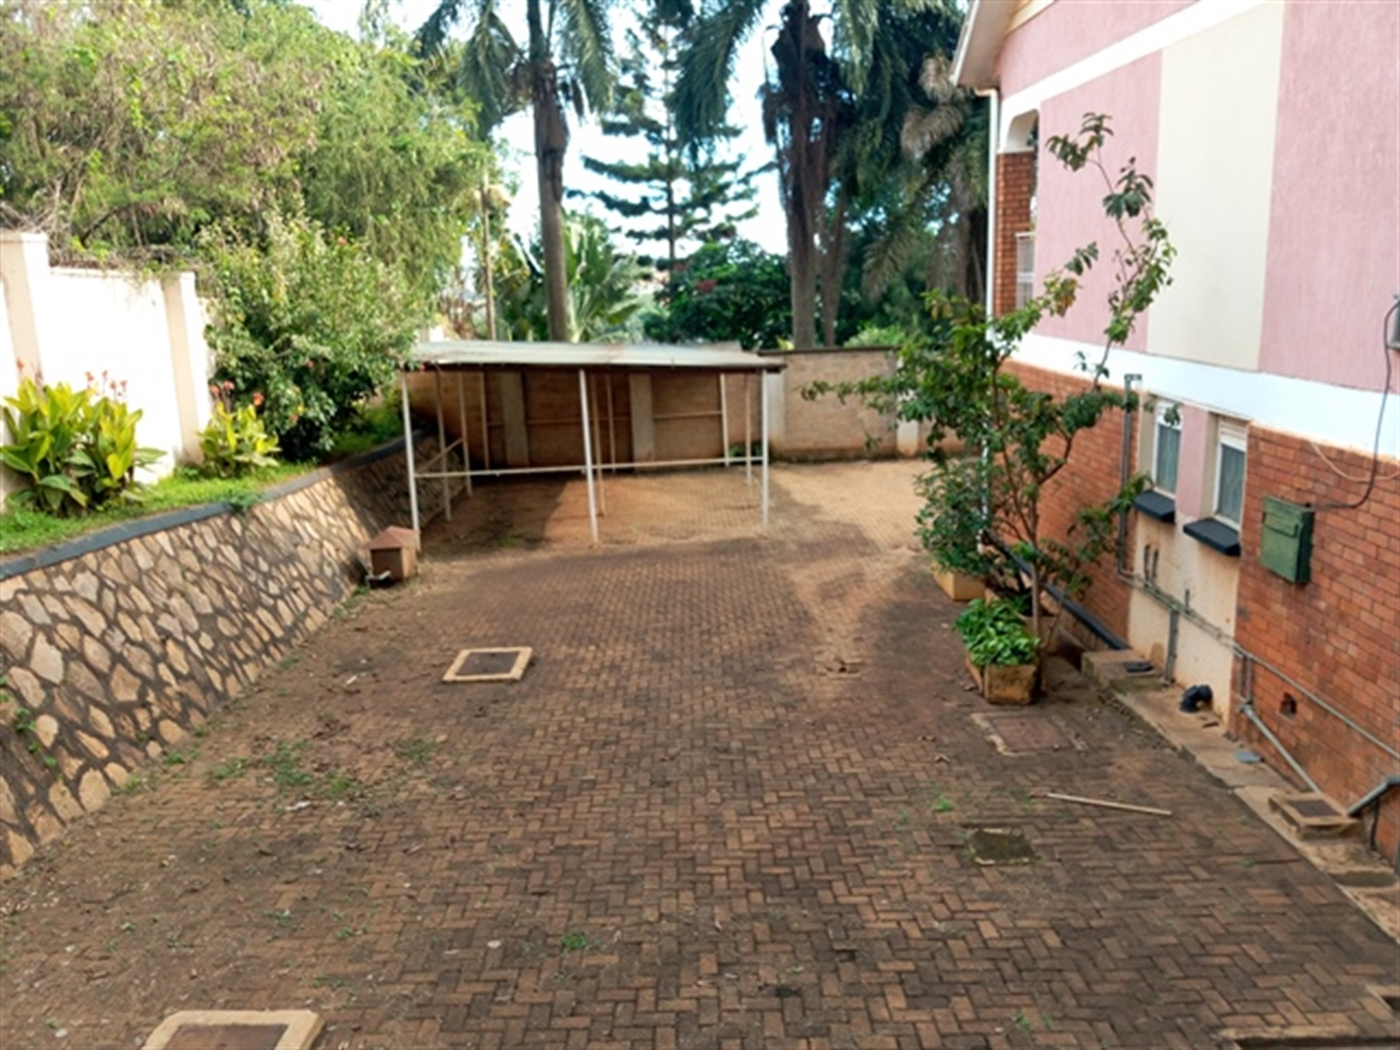 Mansion for rent in Ntinda Kampala